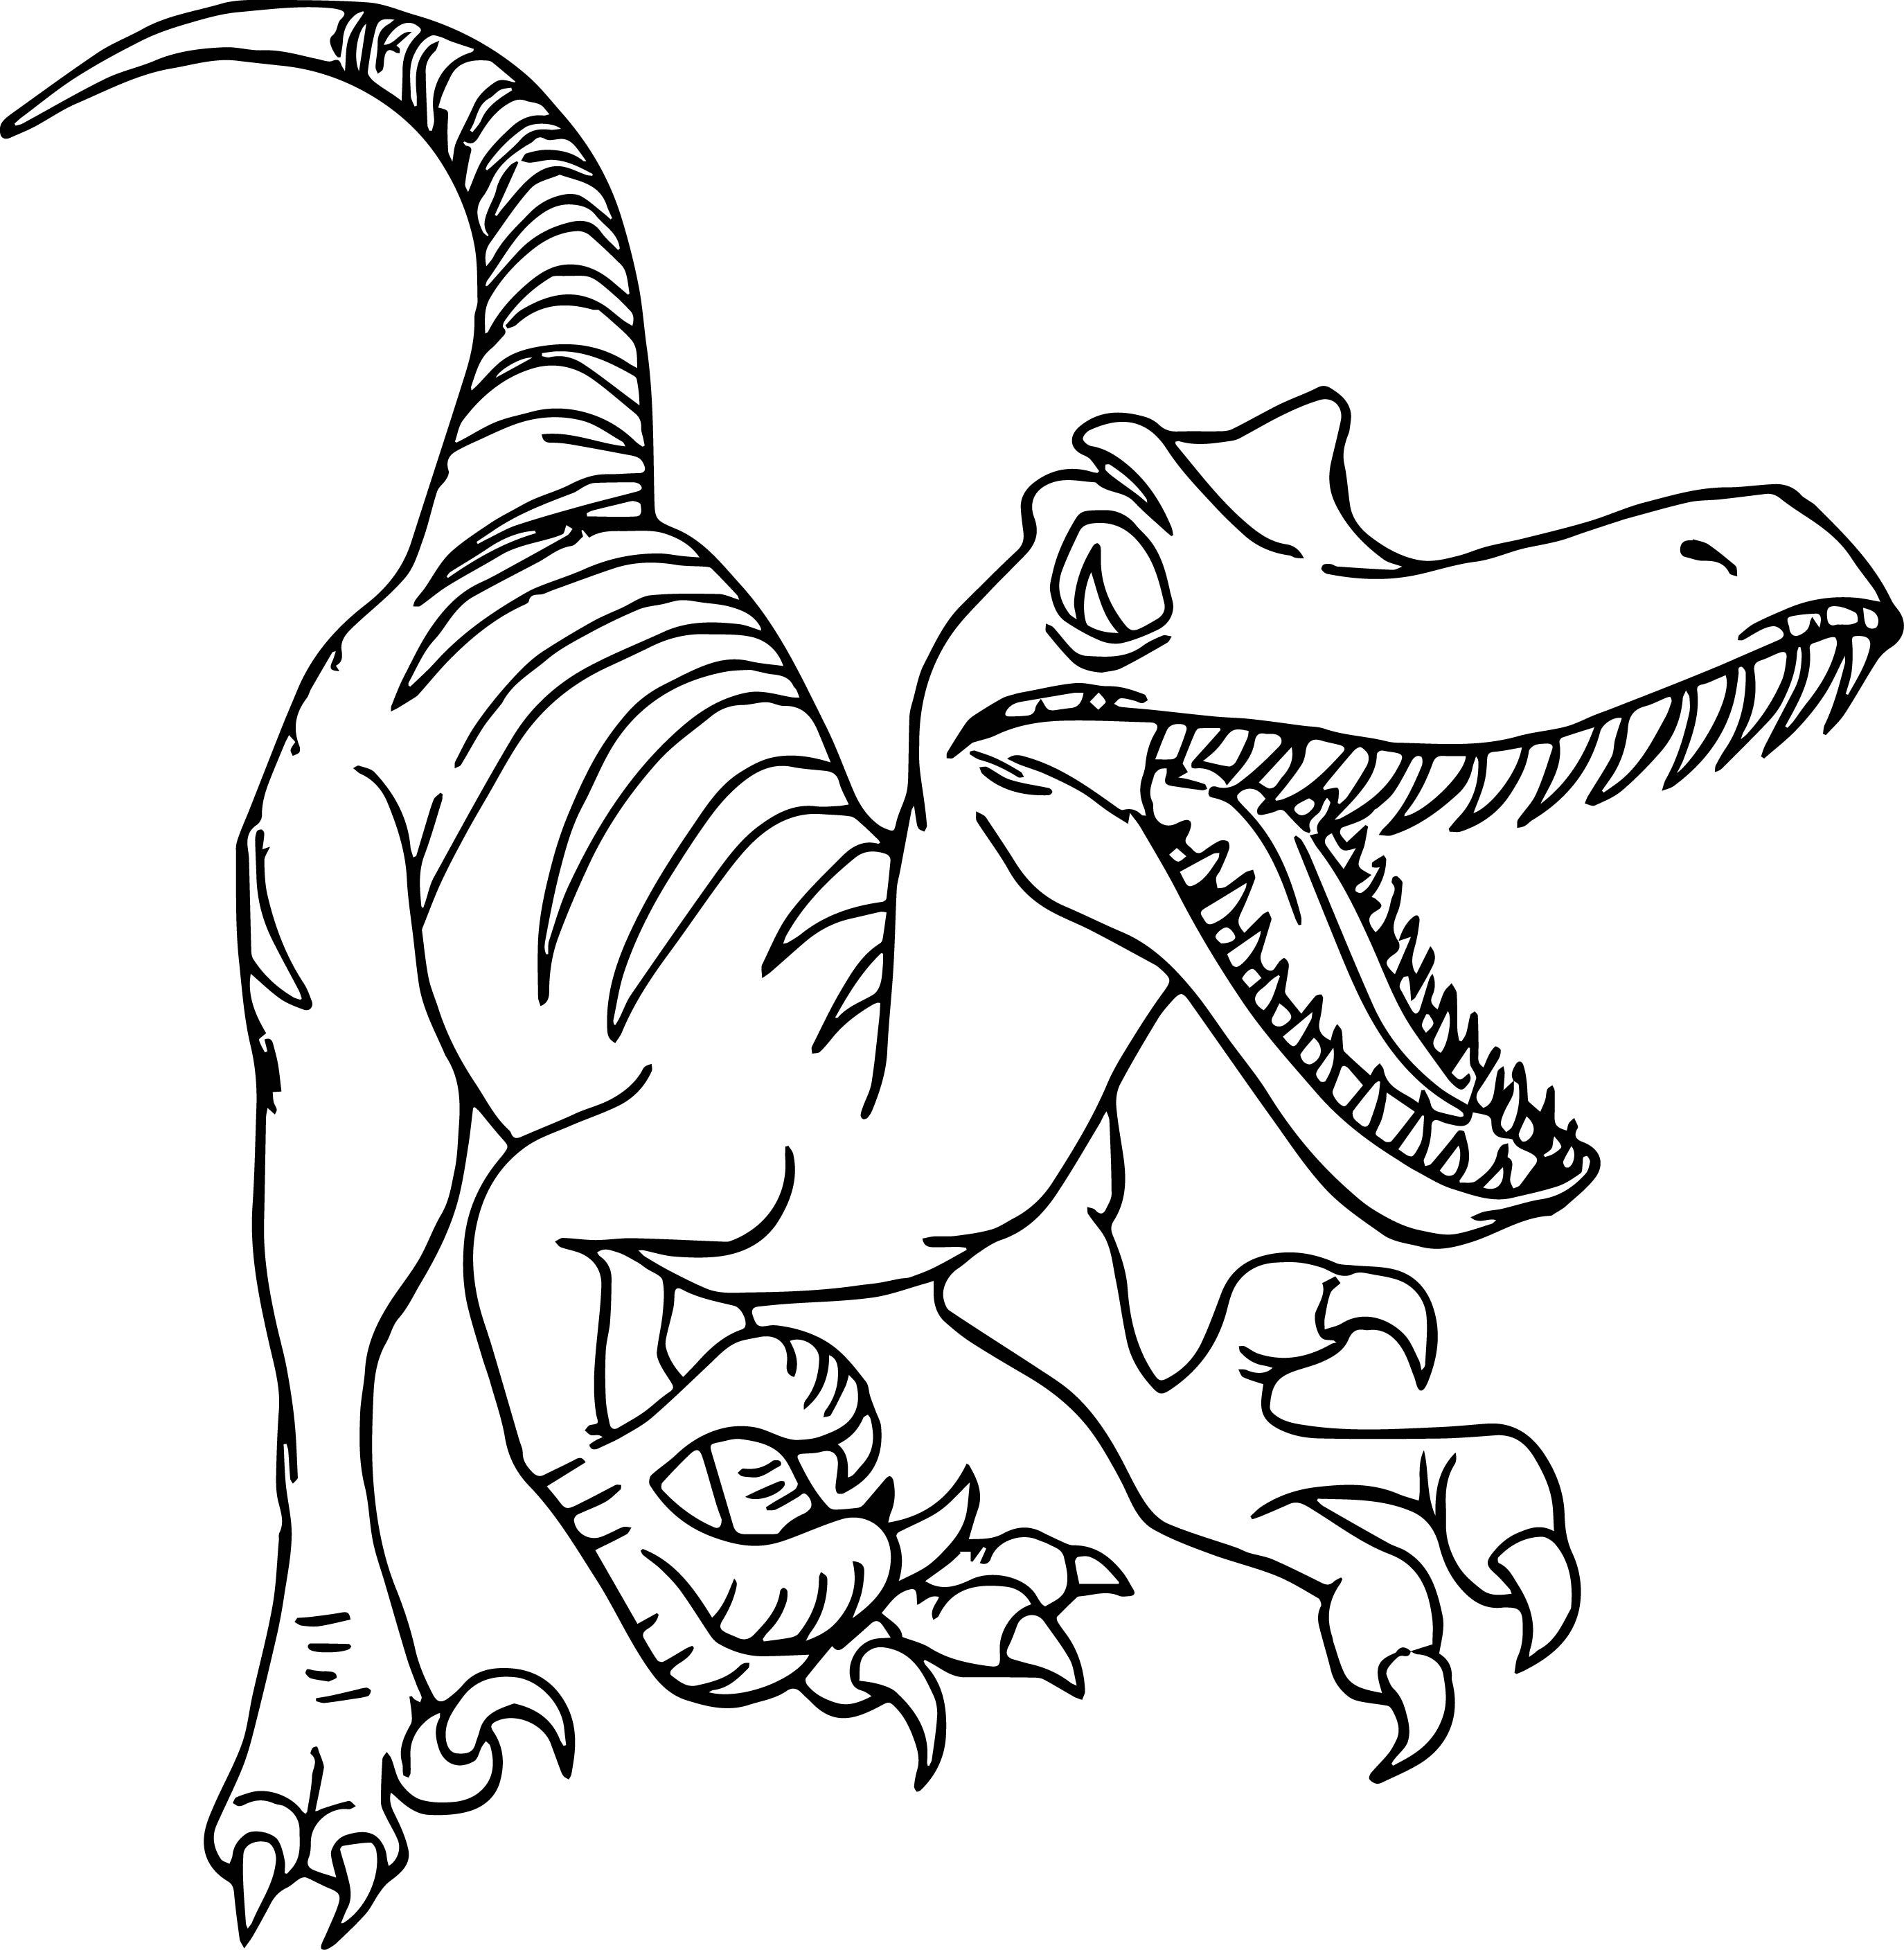 Velociraptor Printable Coloring Pages At Getcolorings